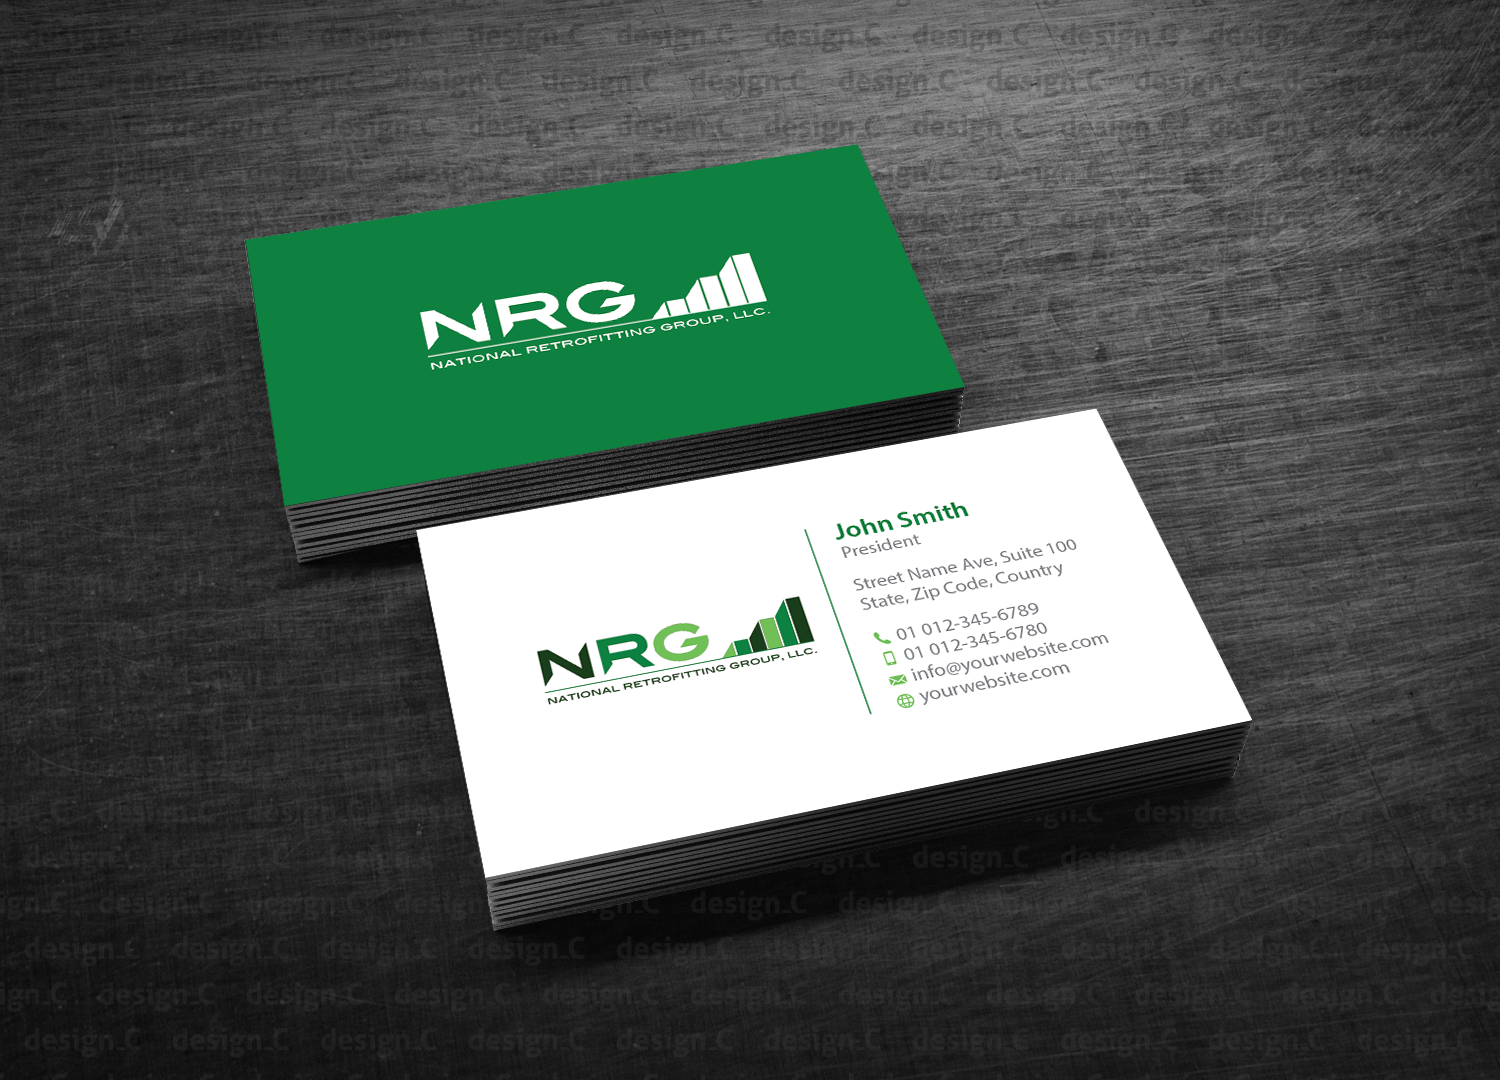 New Business Card Design Galleries for Inspiration